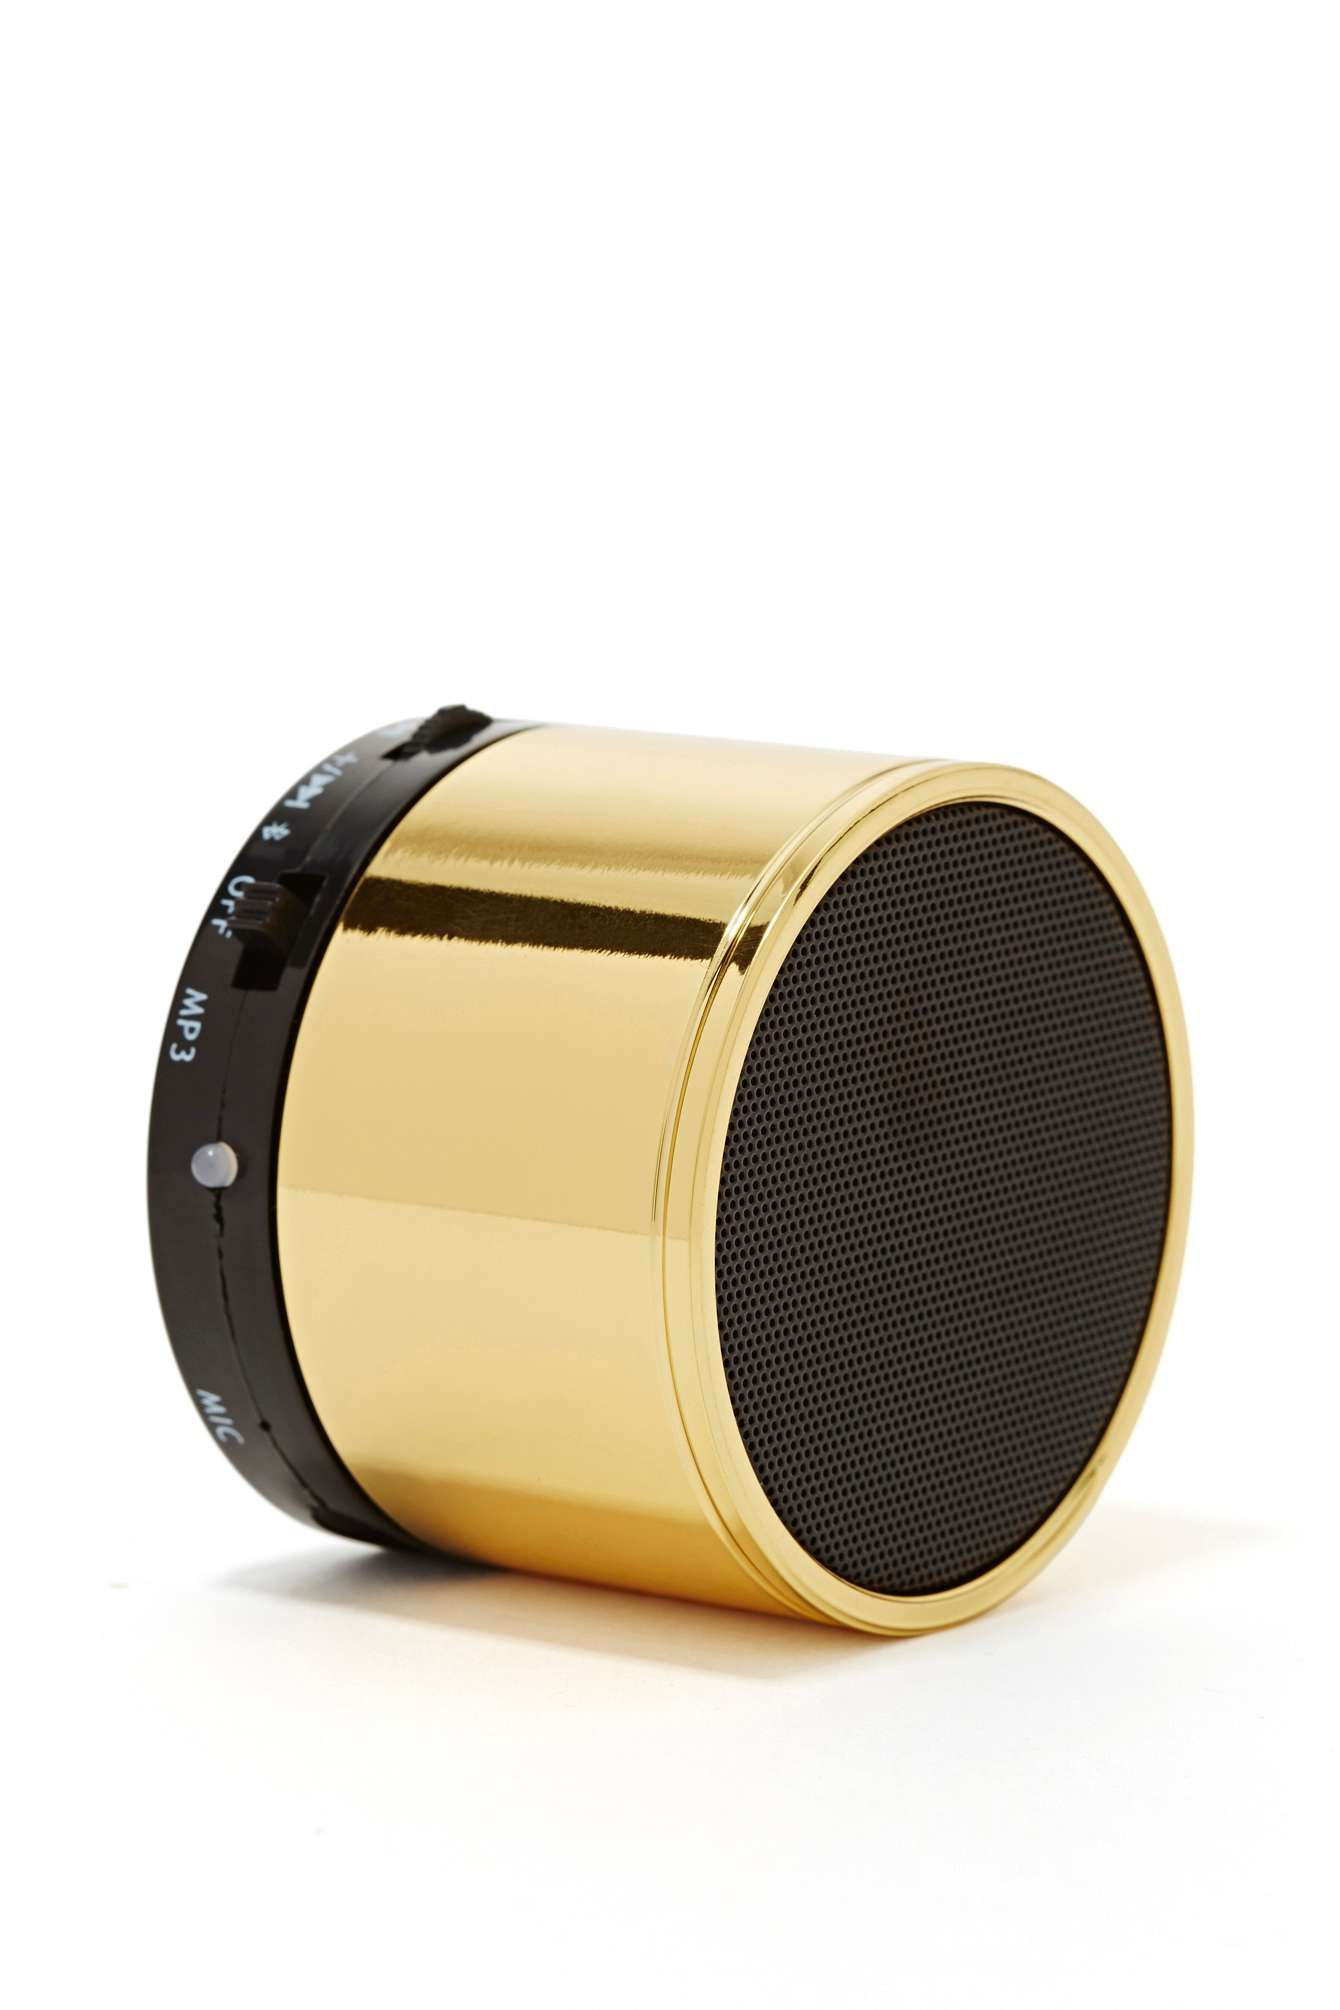 gold standard bluetooth speaker shop accessories at. Black Bedroom Furniture Sets. Home Design Ideas